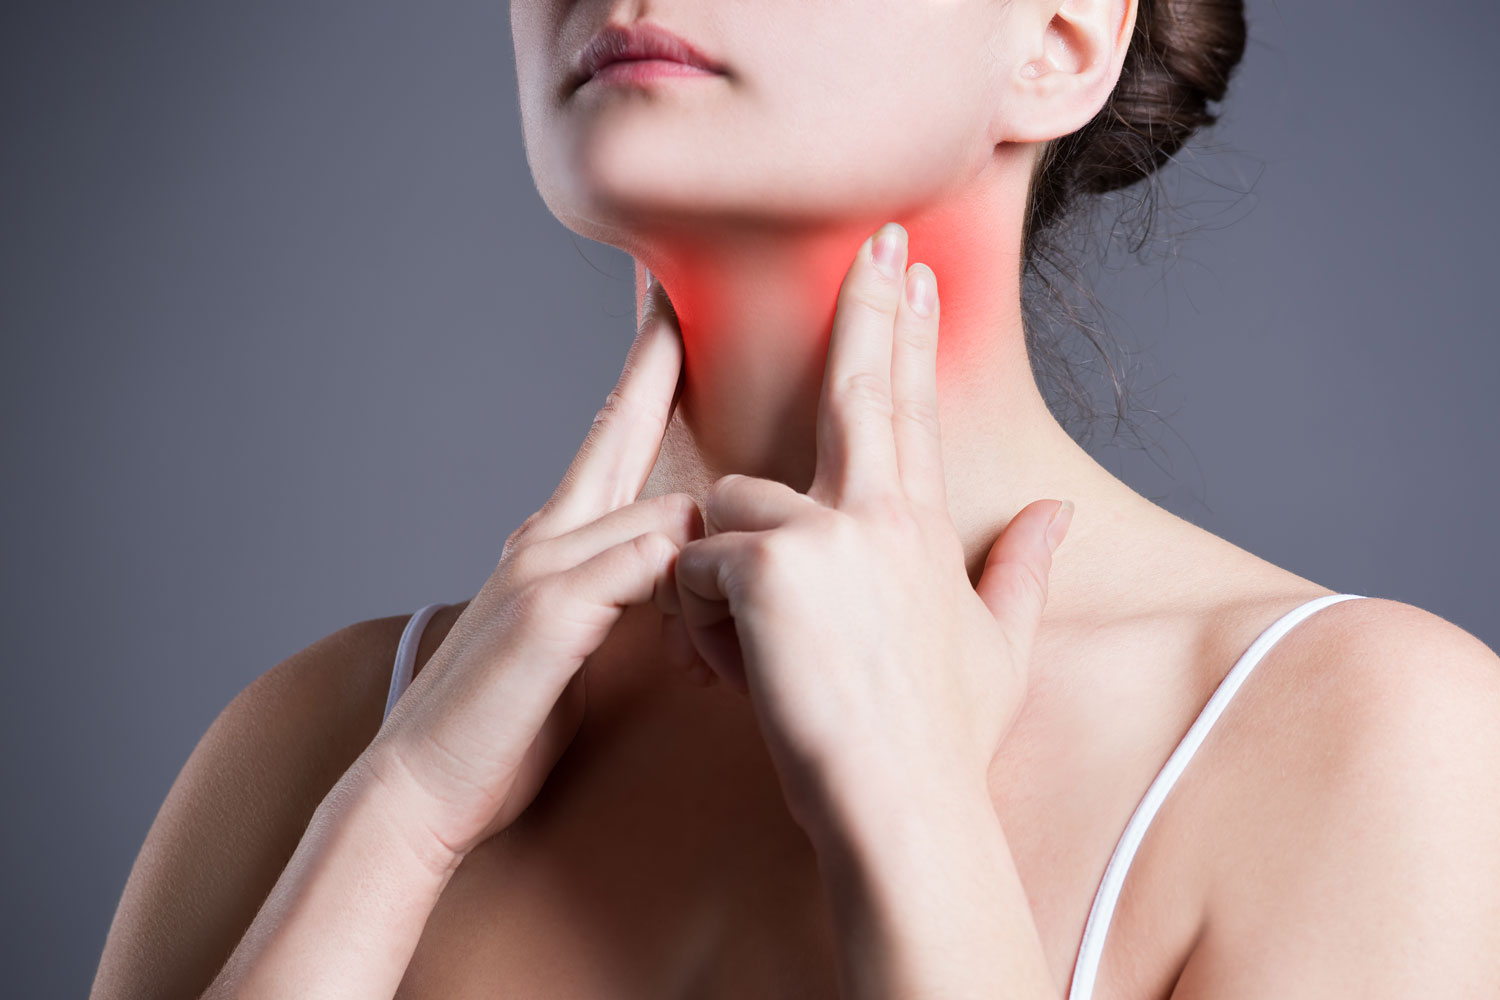 Sore-throat,-woman-with-pain-in-neck,-gray-background